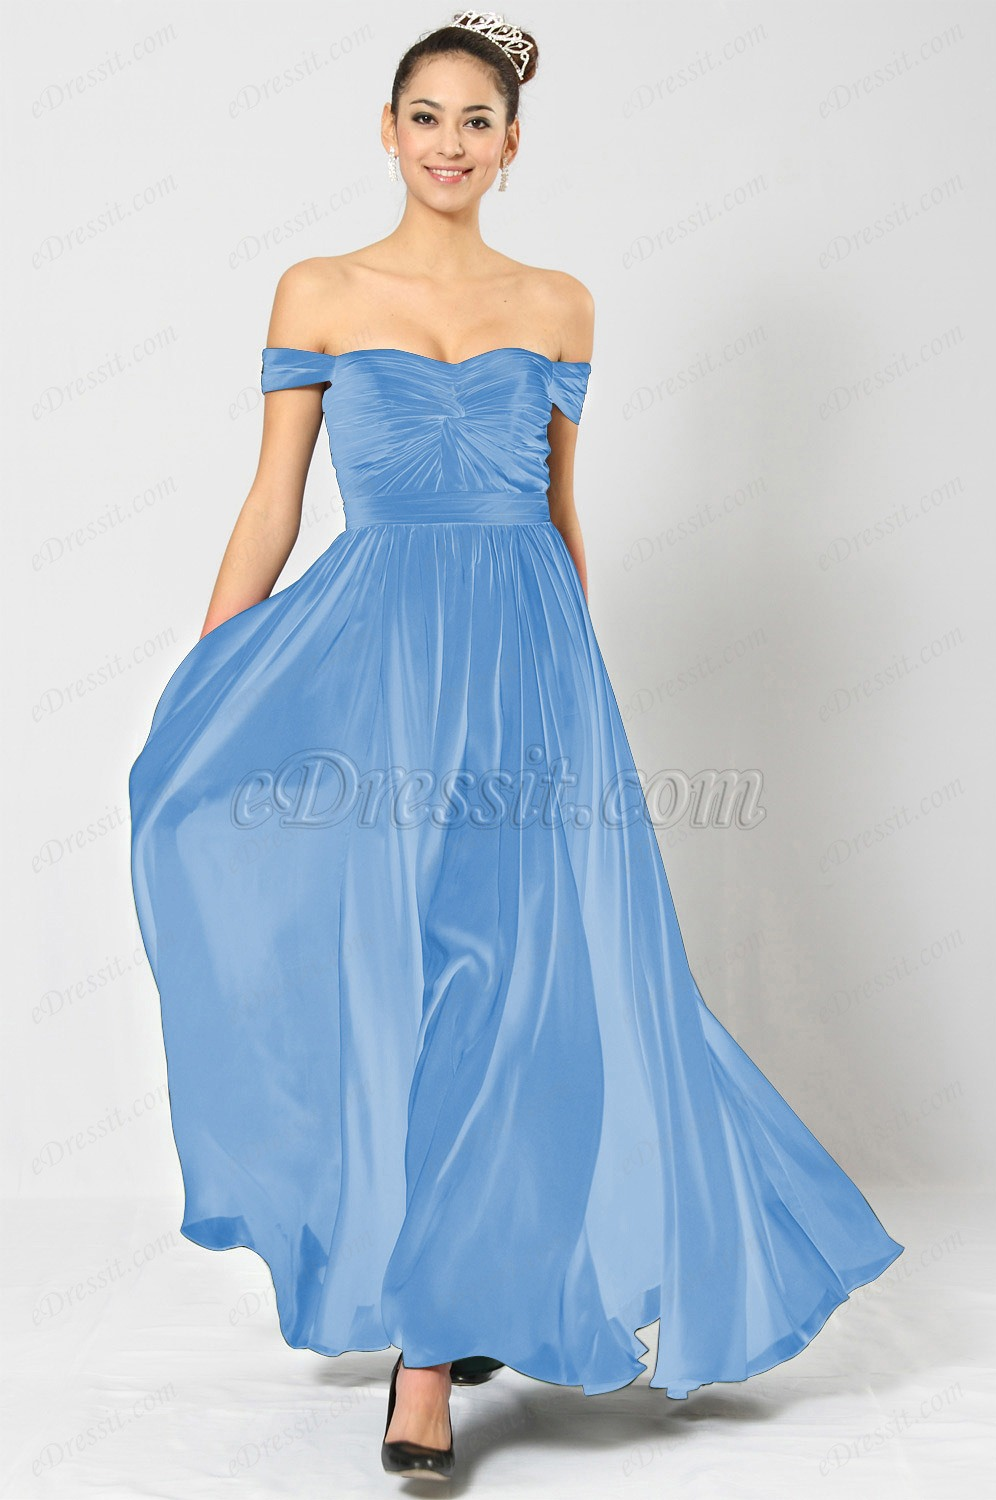 Clearance Sale !eDressit Fabulous V-Cut Evening Dress (00090704G)